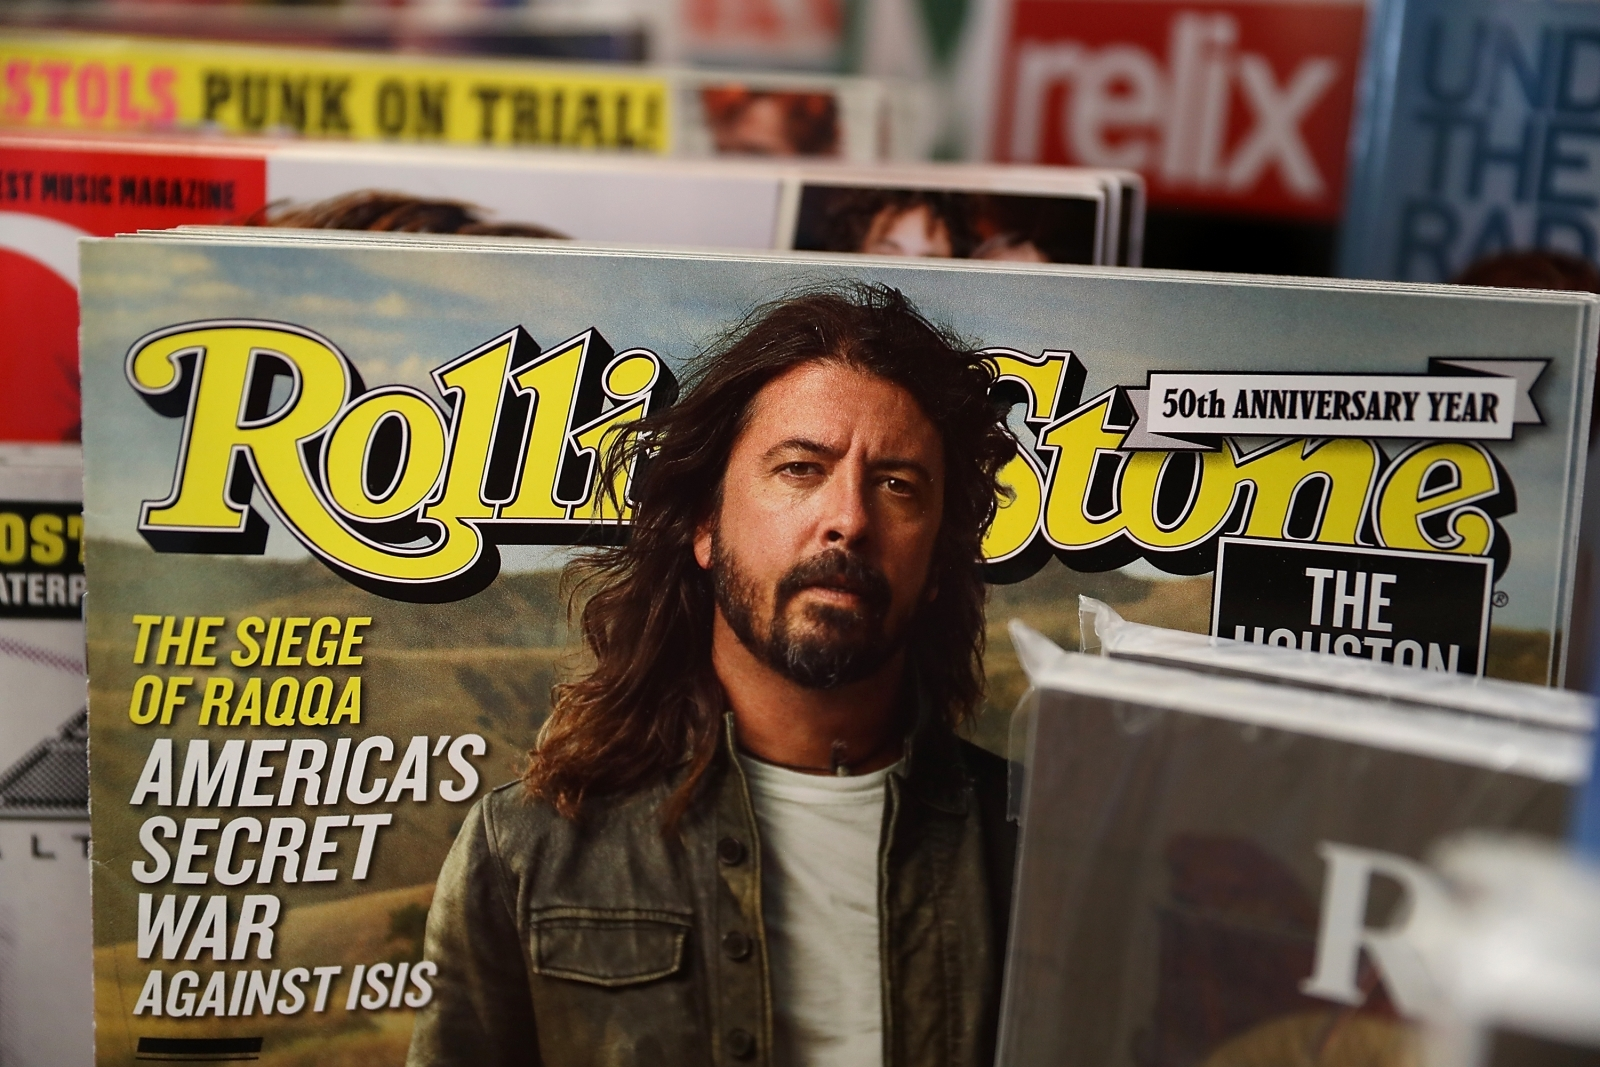 Penske Media buys major stake in Rolling Stone magazine